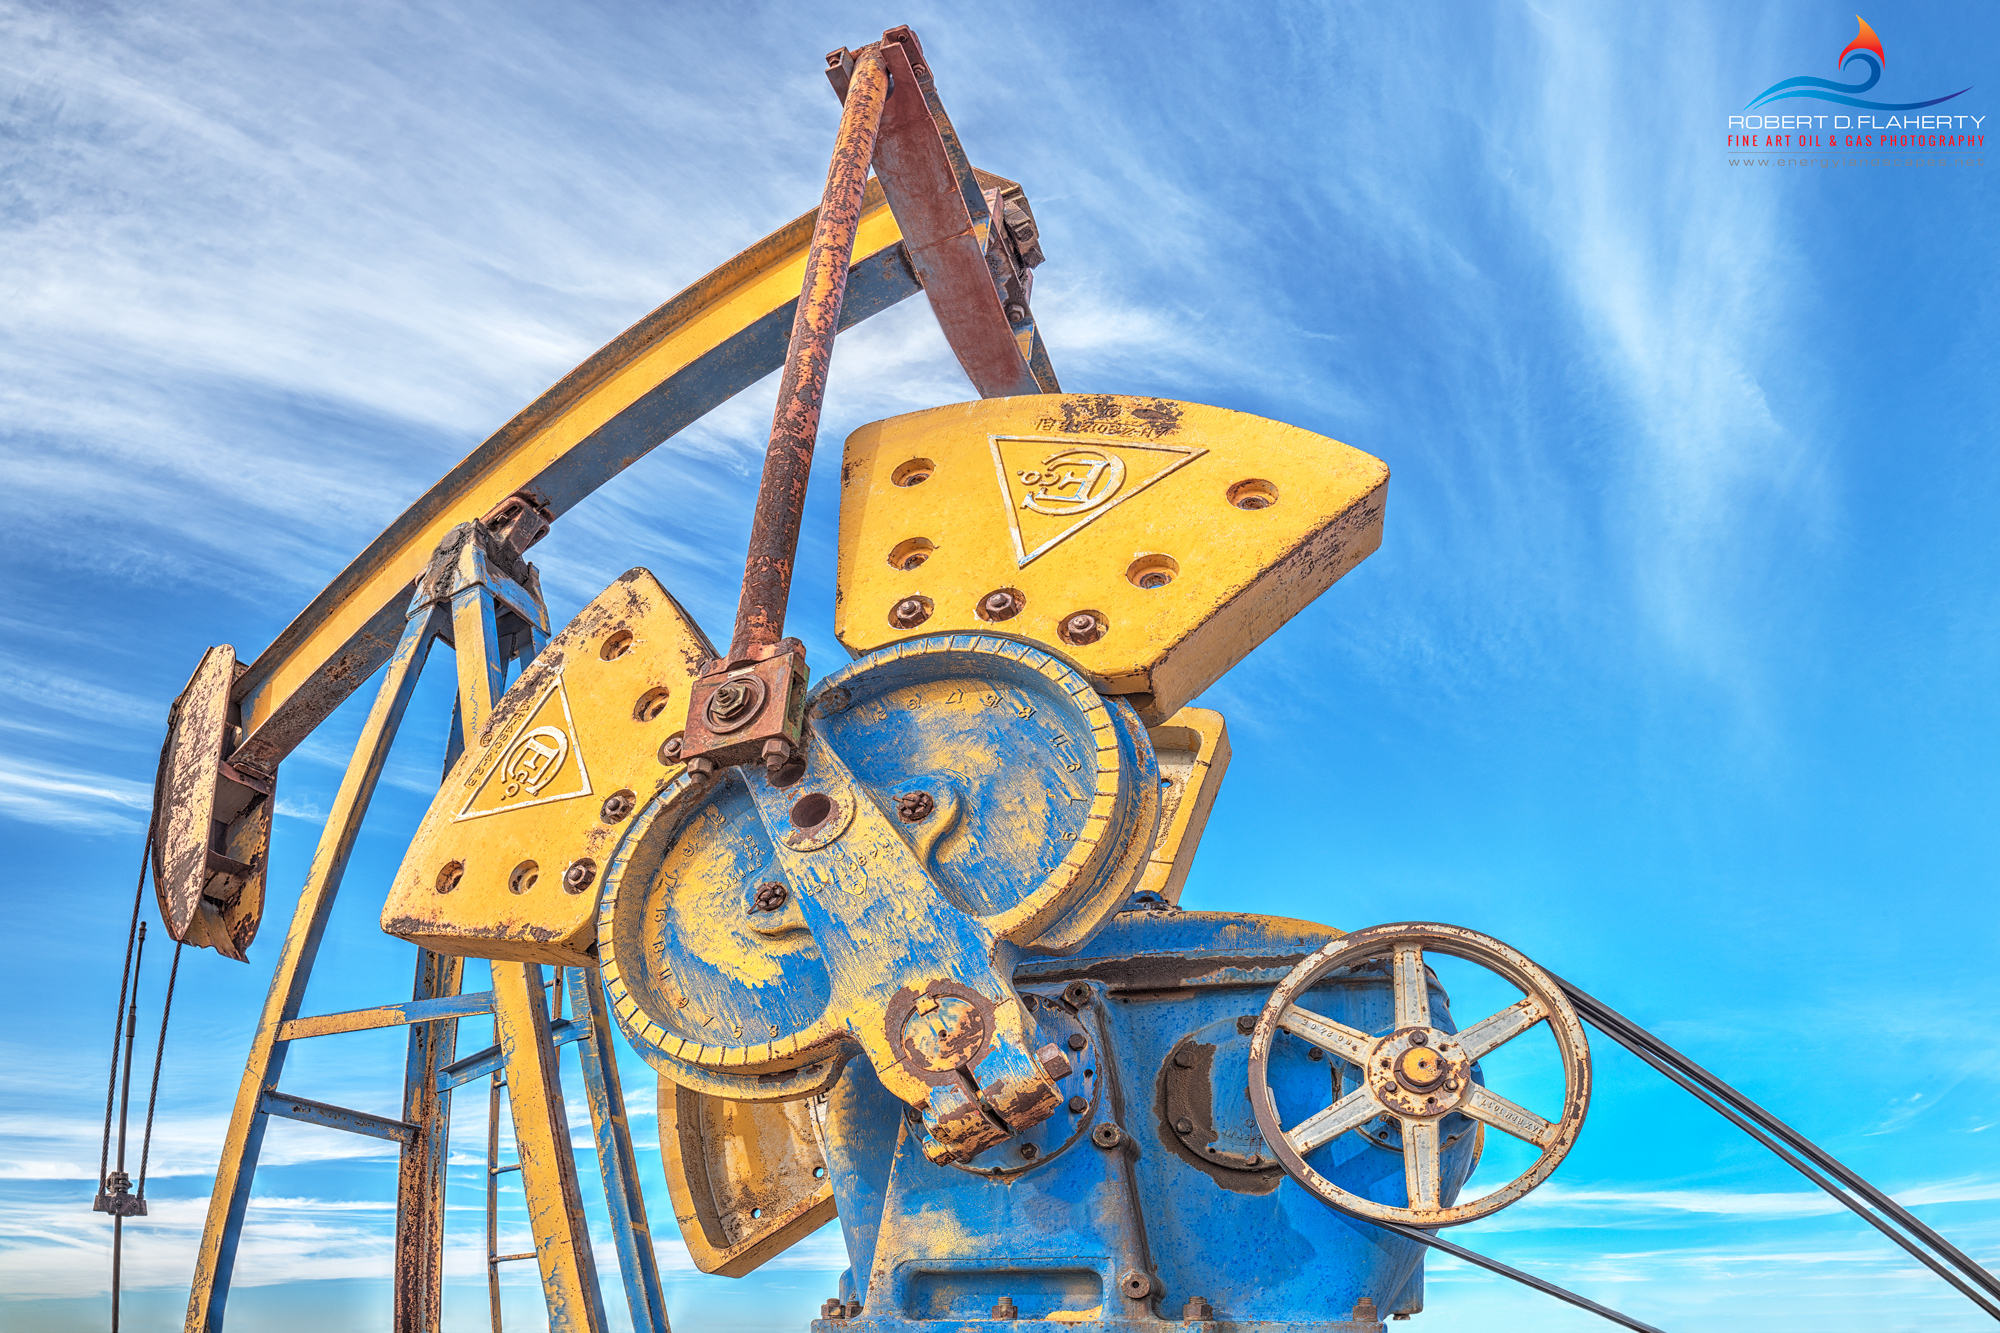 pumpjack, pump jack, lea County New Mexico, Square Lake, stripper well ,fine art photography of oilfield production assets